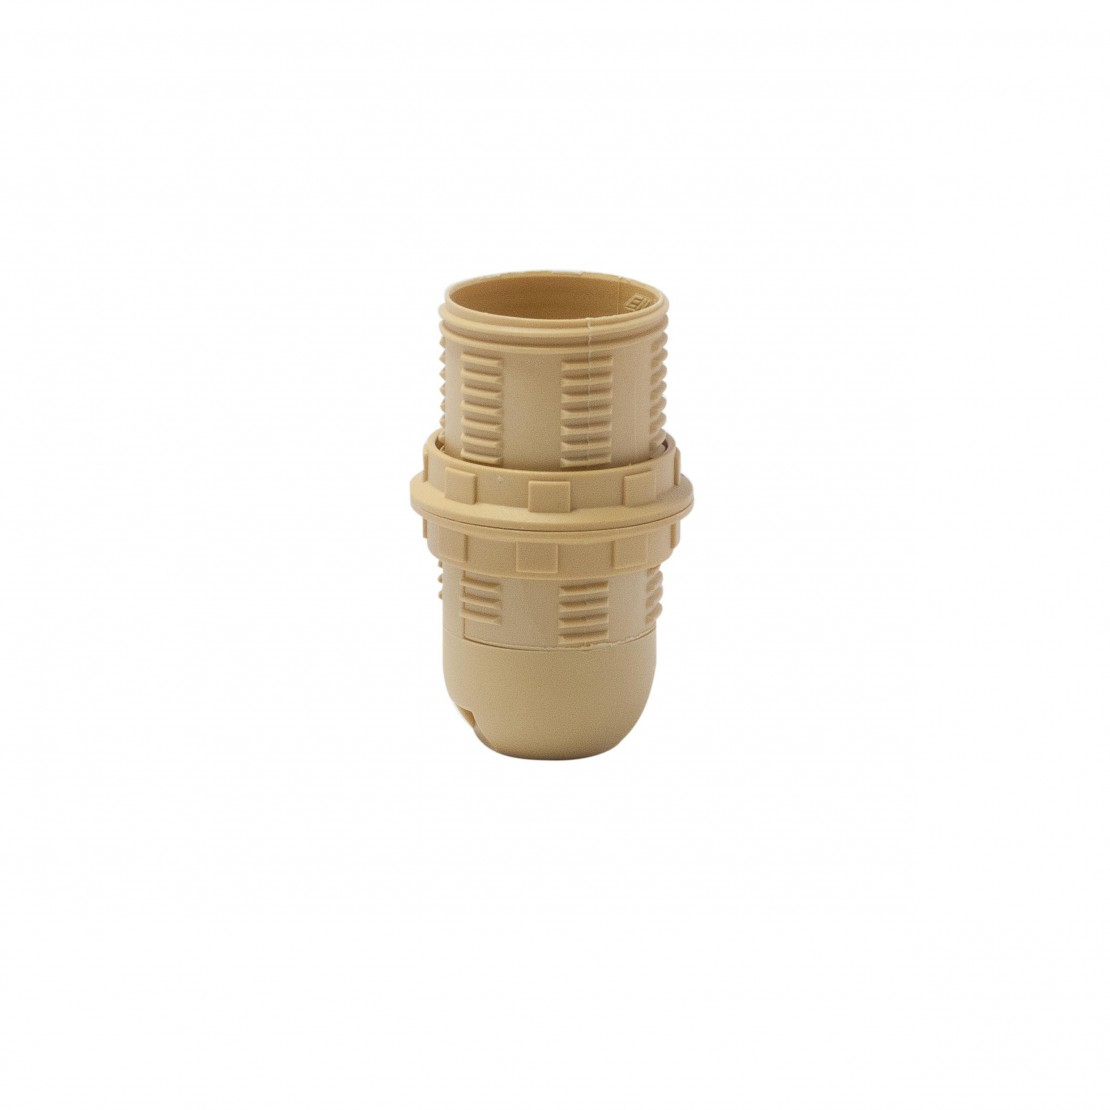 Threaded E14 quick-connect lamp holder, gold